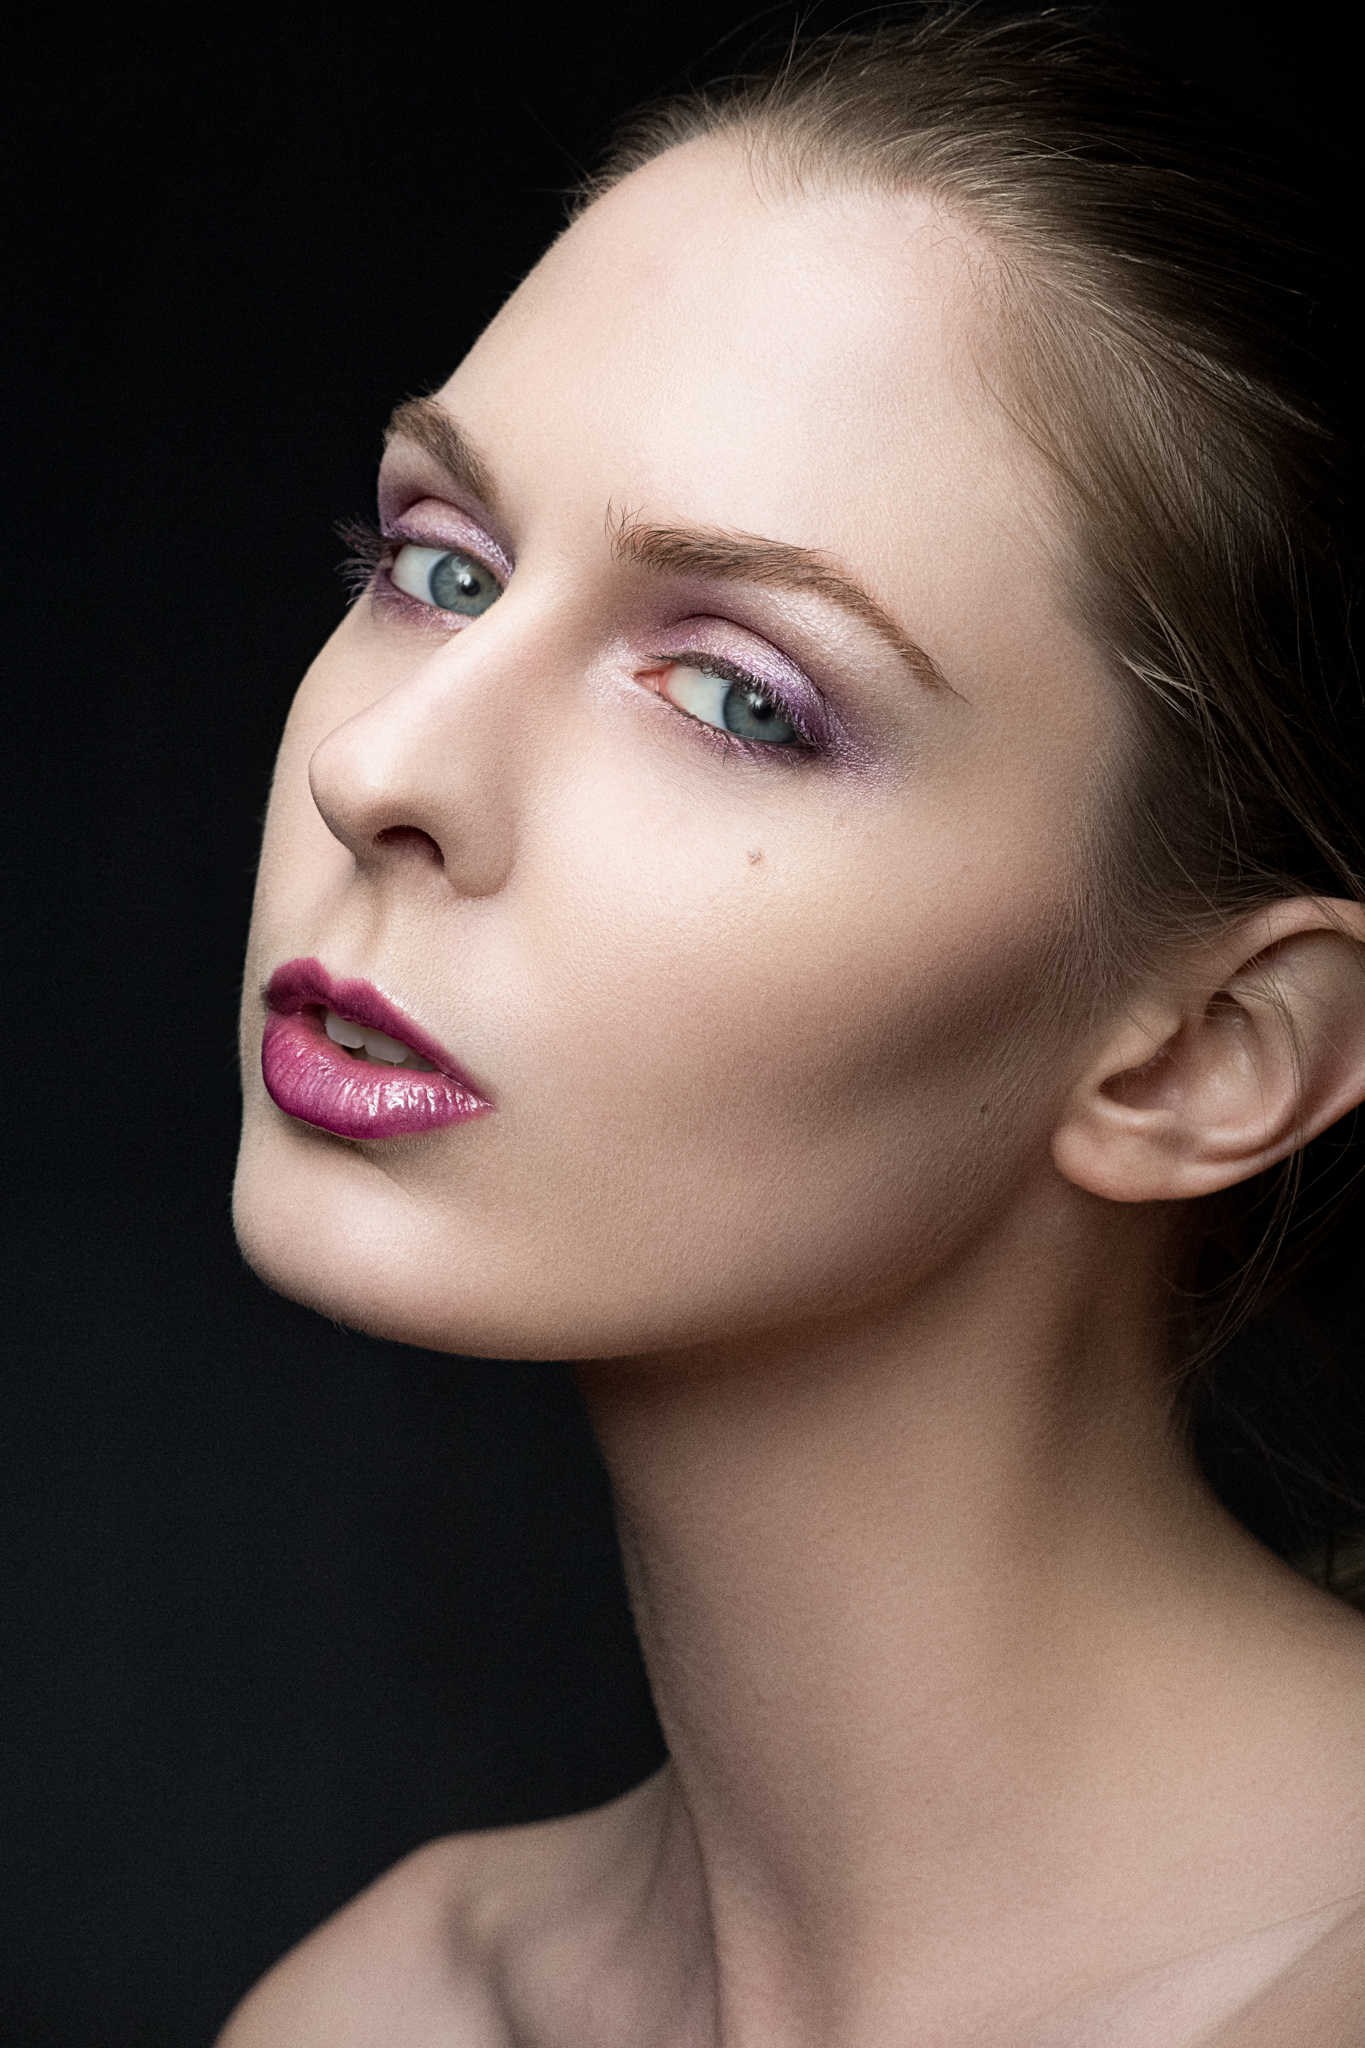 Los Angeles Beauty & Product Photographer